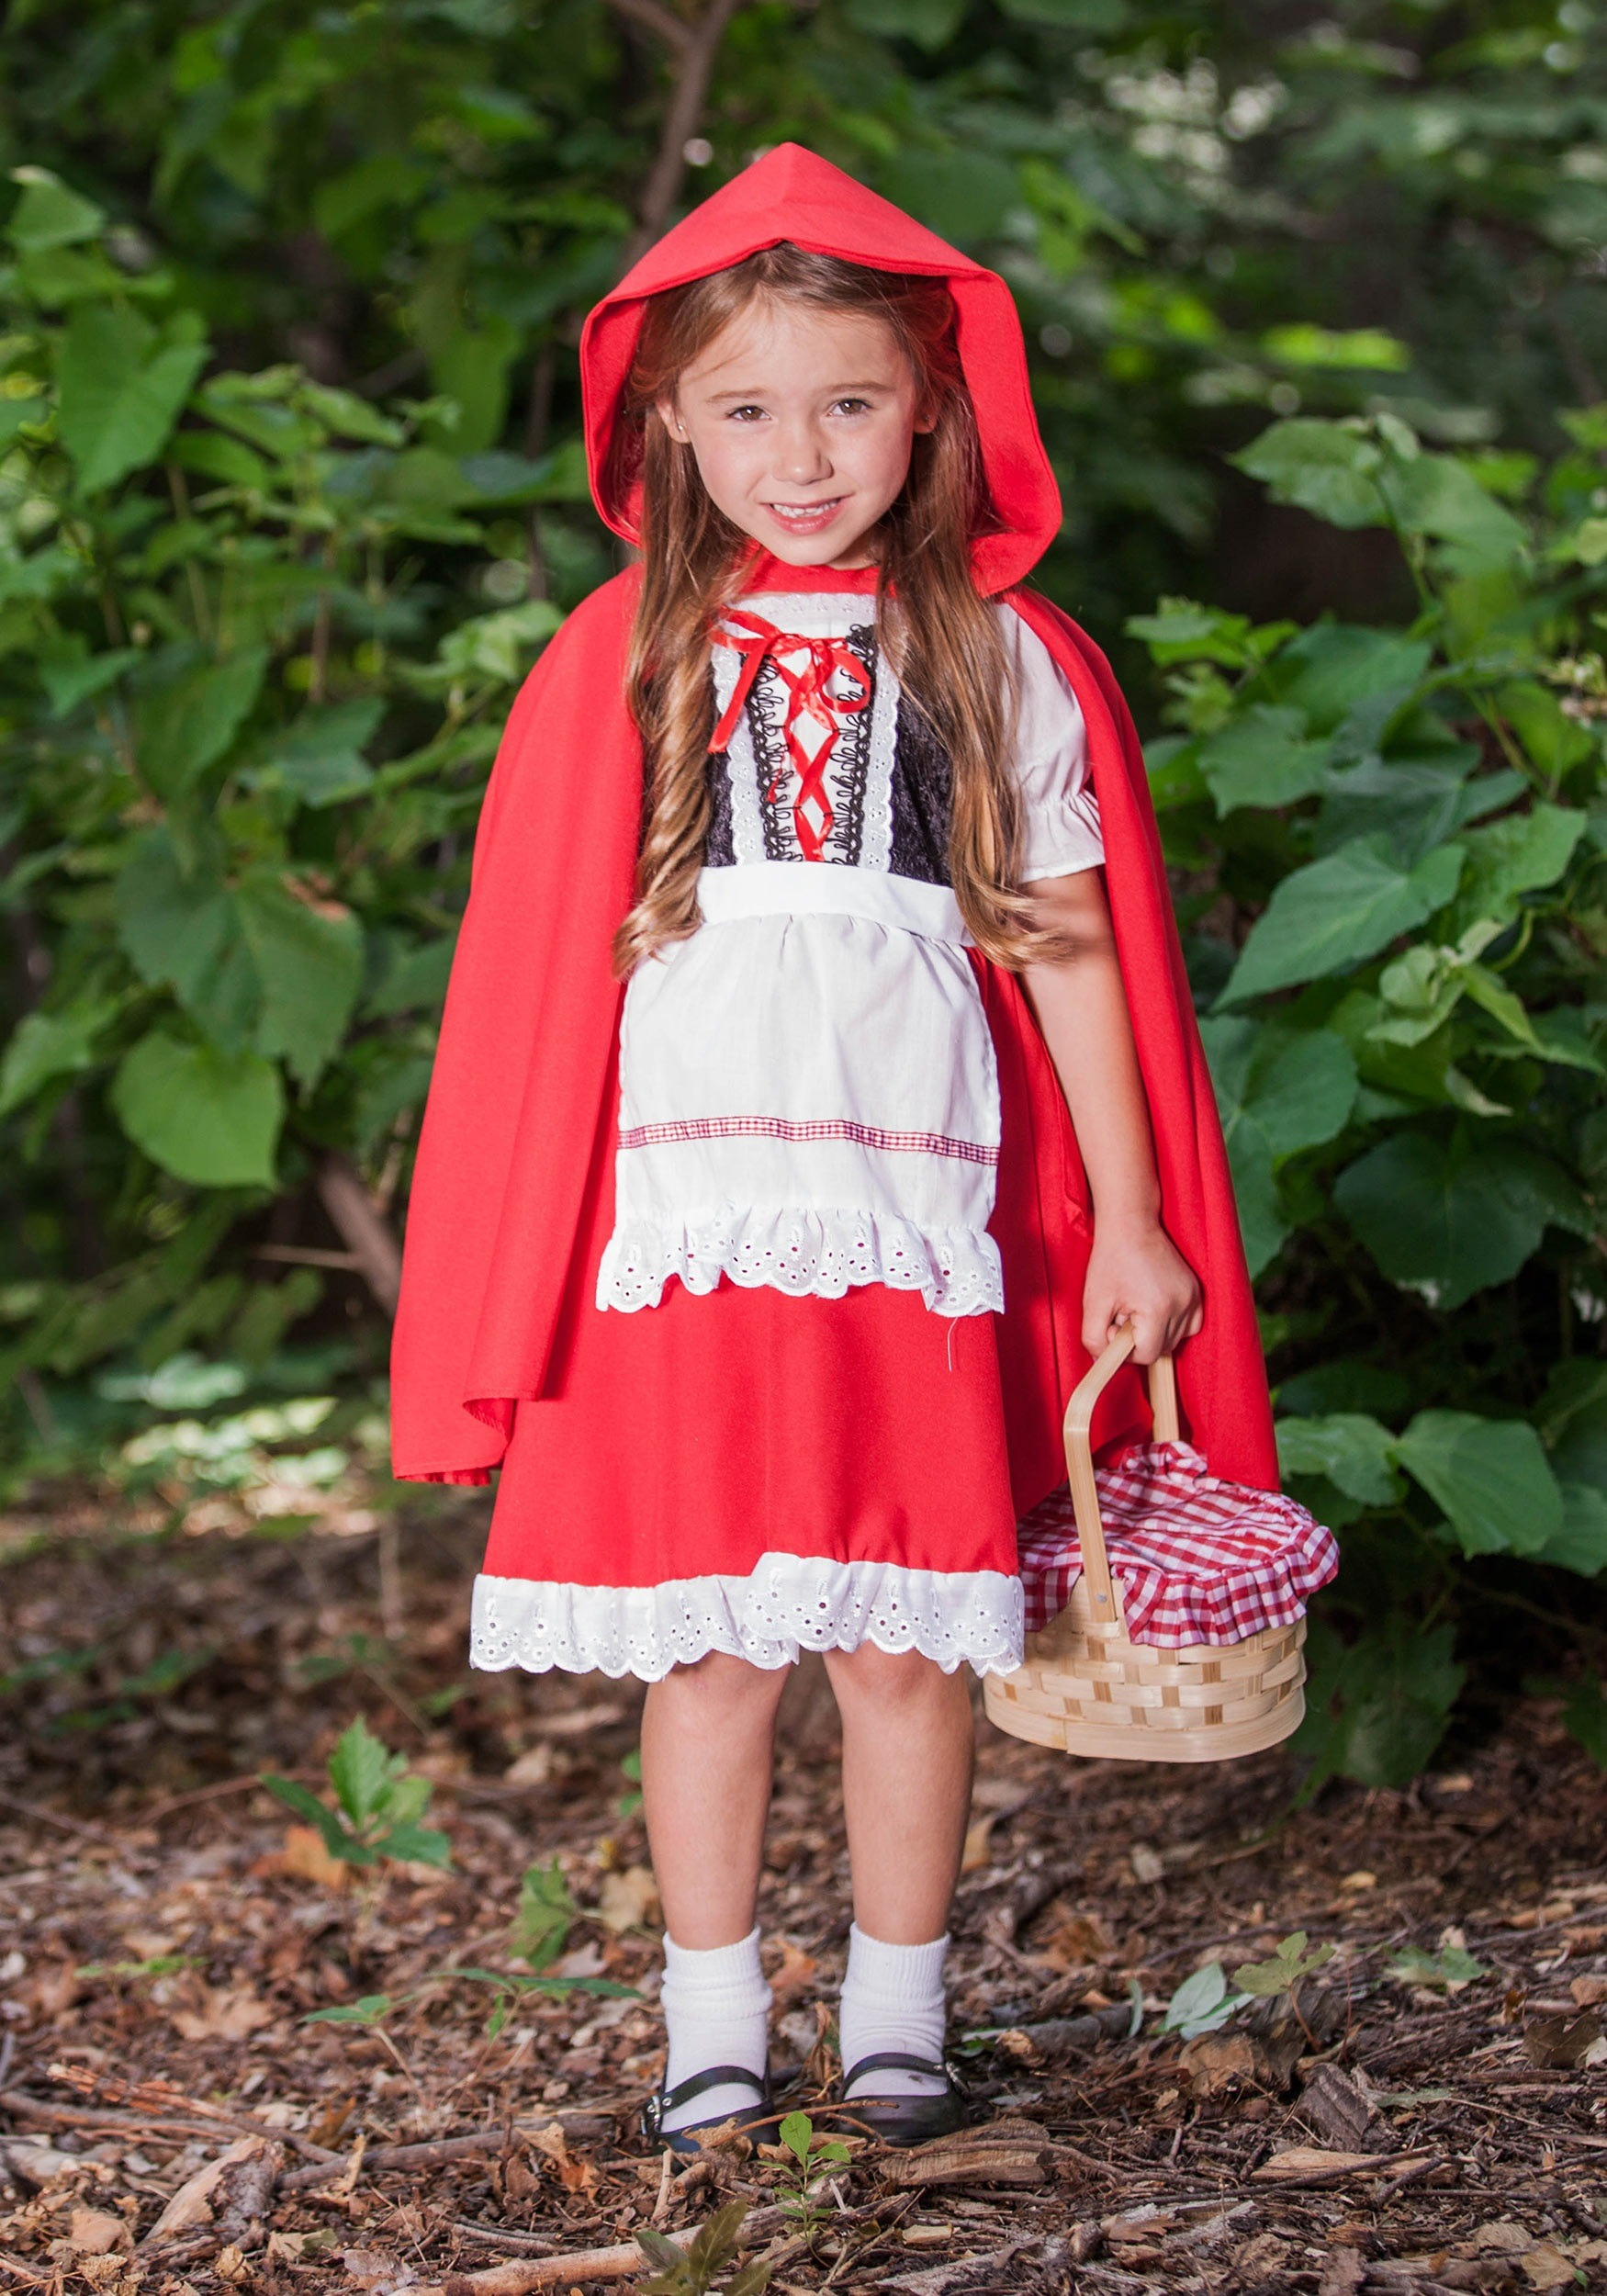 little red ridding hood Little red riding hood by leanne guenther once upon a time, there was a little girl who lived in a village near the forest whenever she went out, the little girl wore a red riding cloak, so everyone in the village called her little red riding hood one morning, little red riding hood asked her mother if she could go to visit her grandmother.